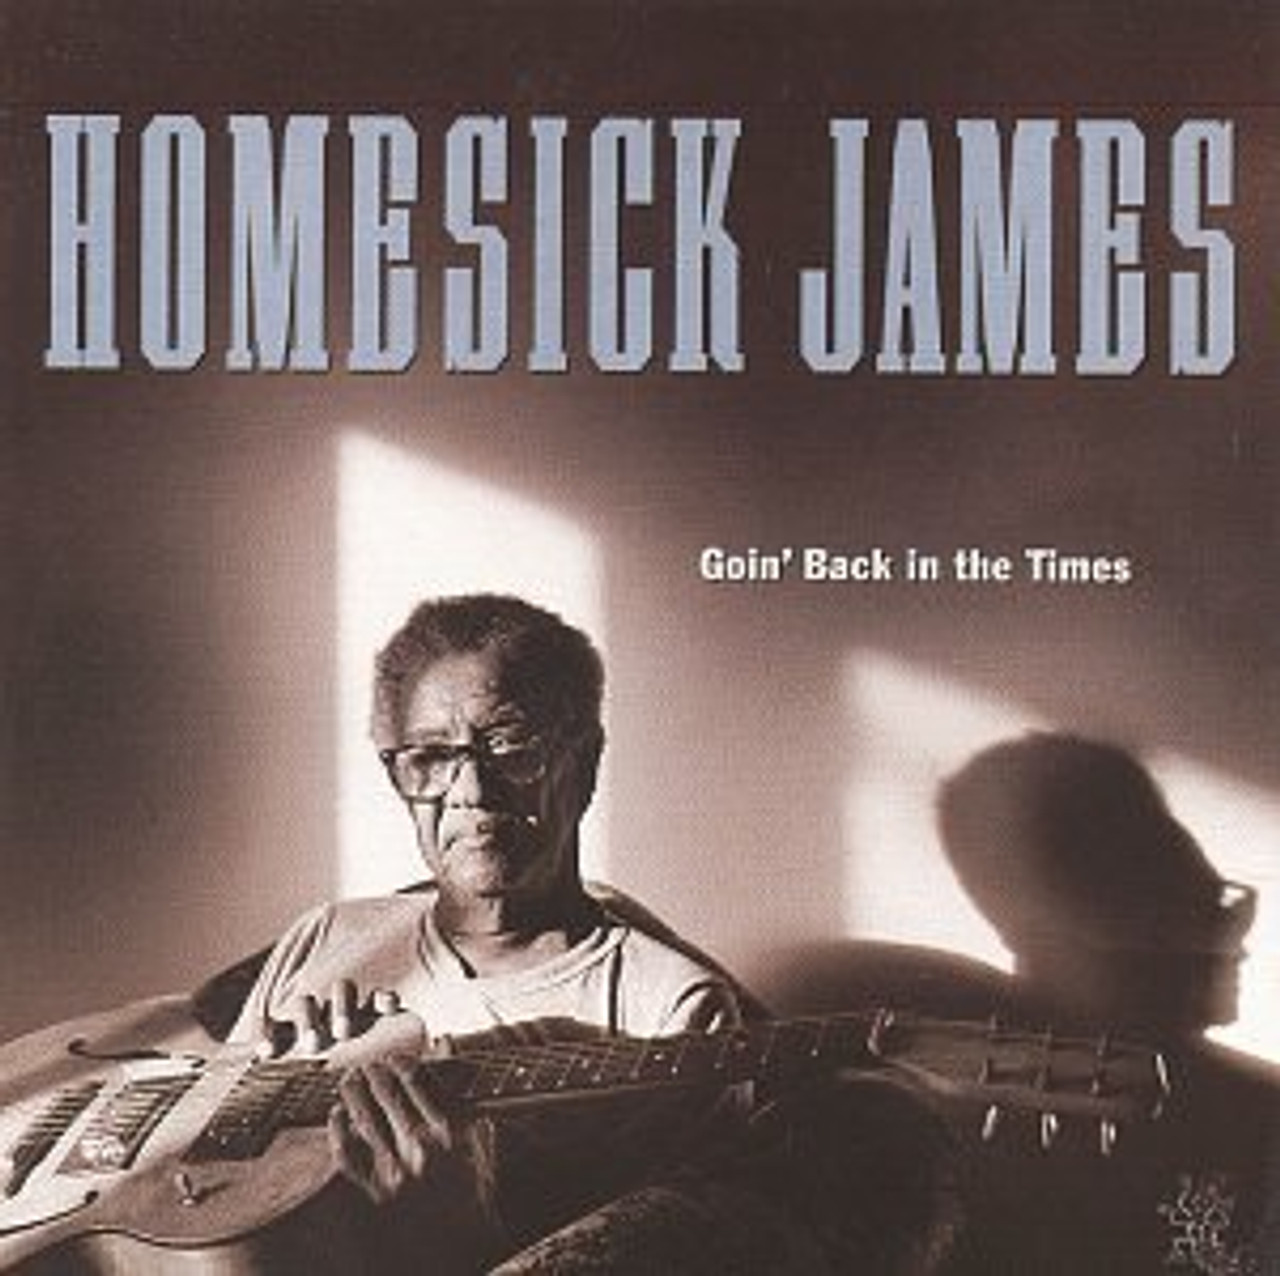 Homesick James - Goin' Back In The Times